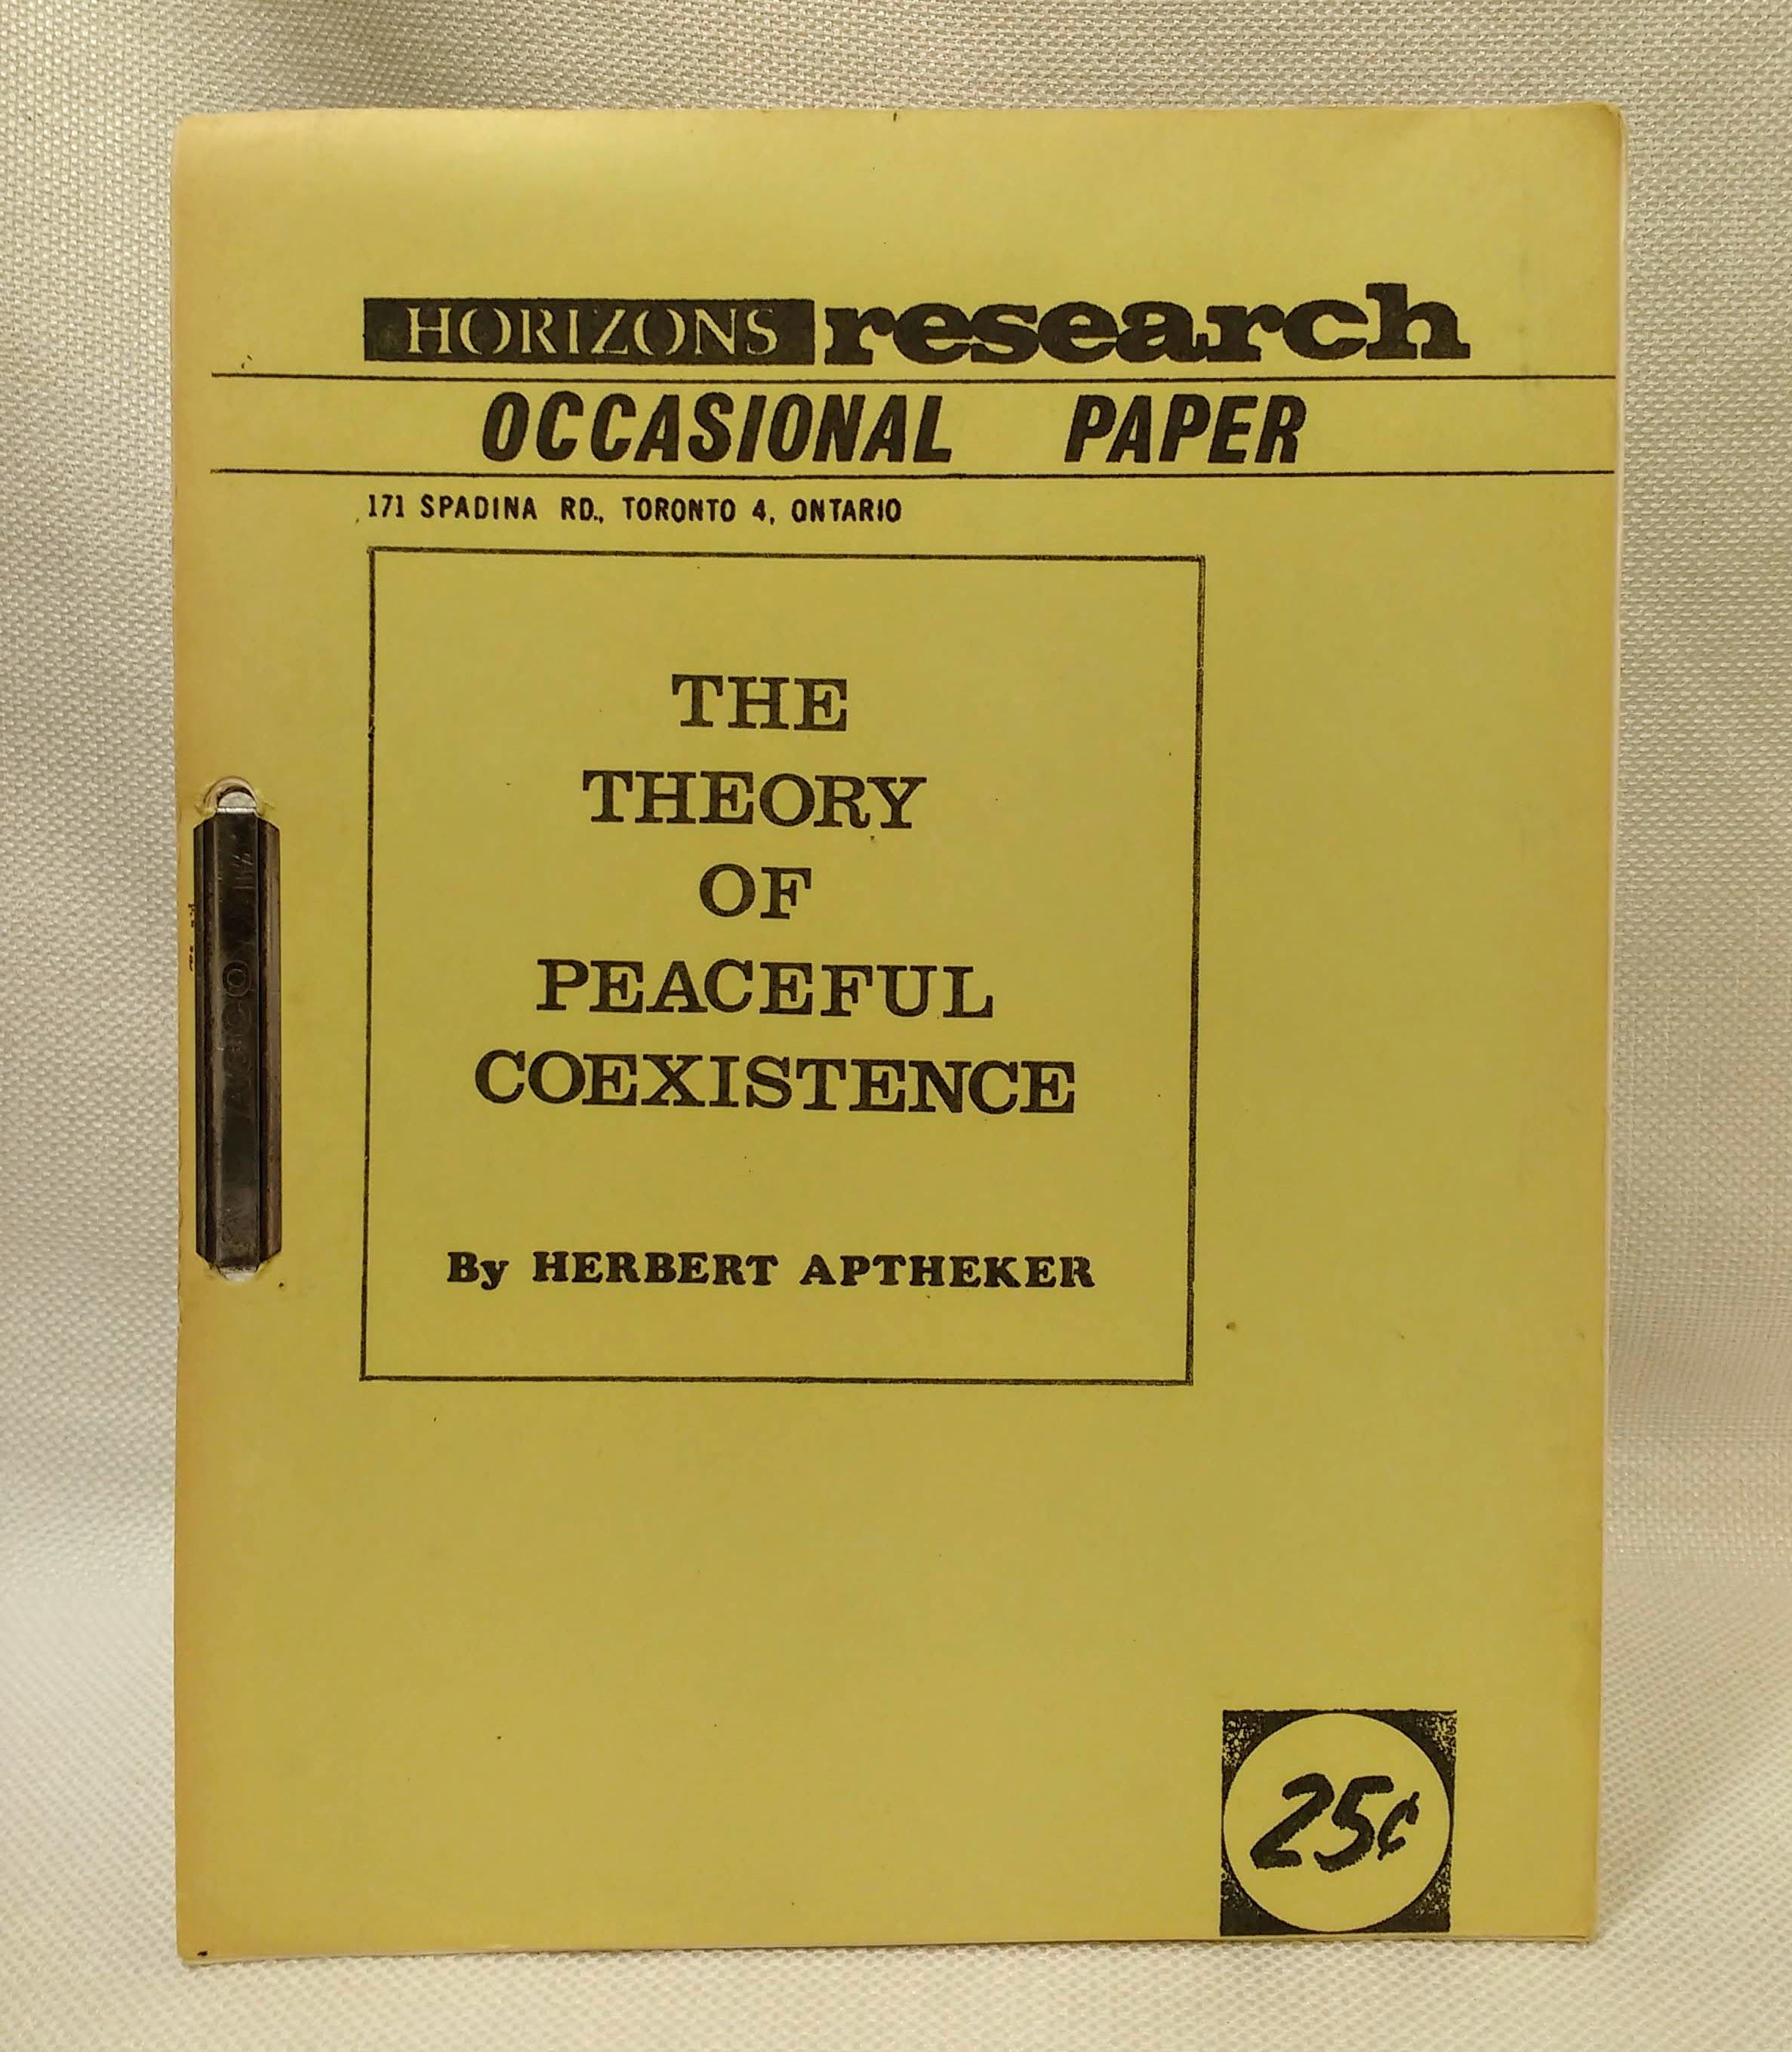 The Theory of Peaceful Coexistence [Horizons Research Occasional Paper], Aptheker, Herbert